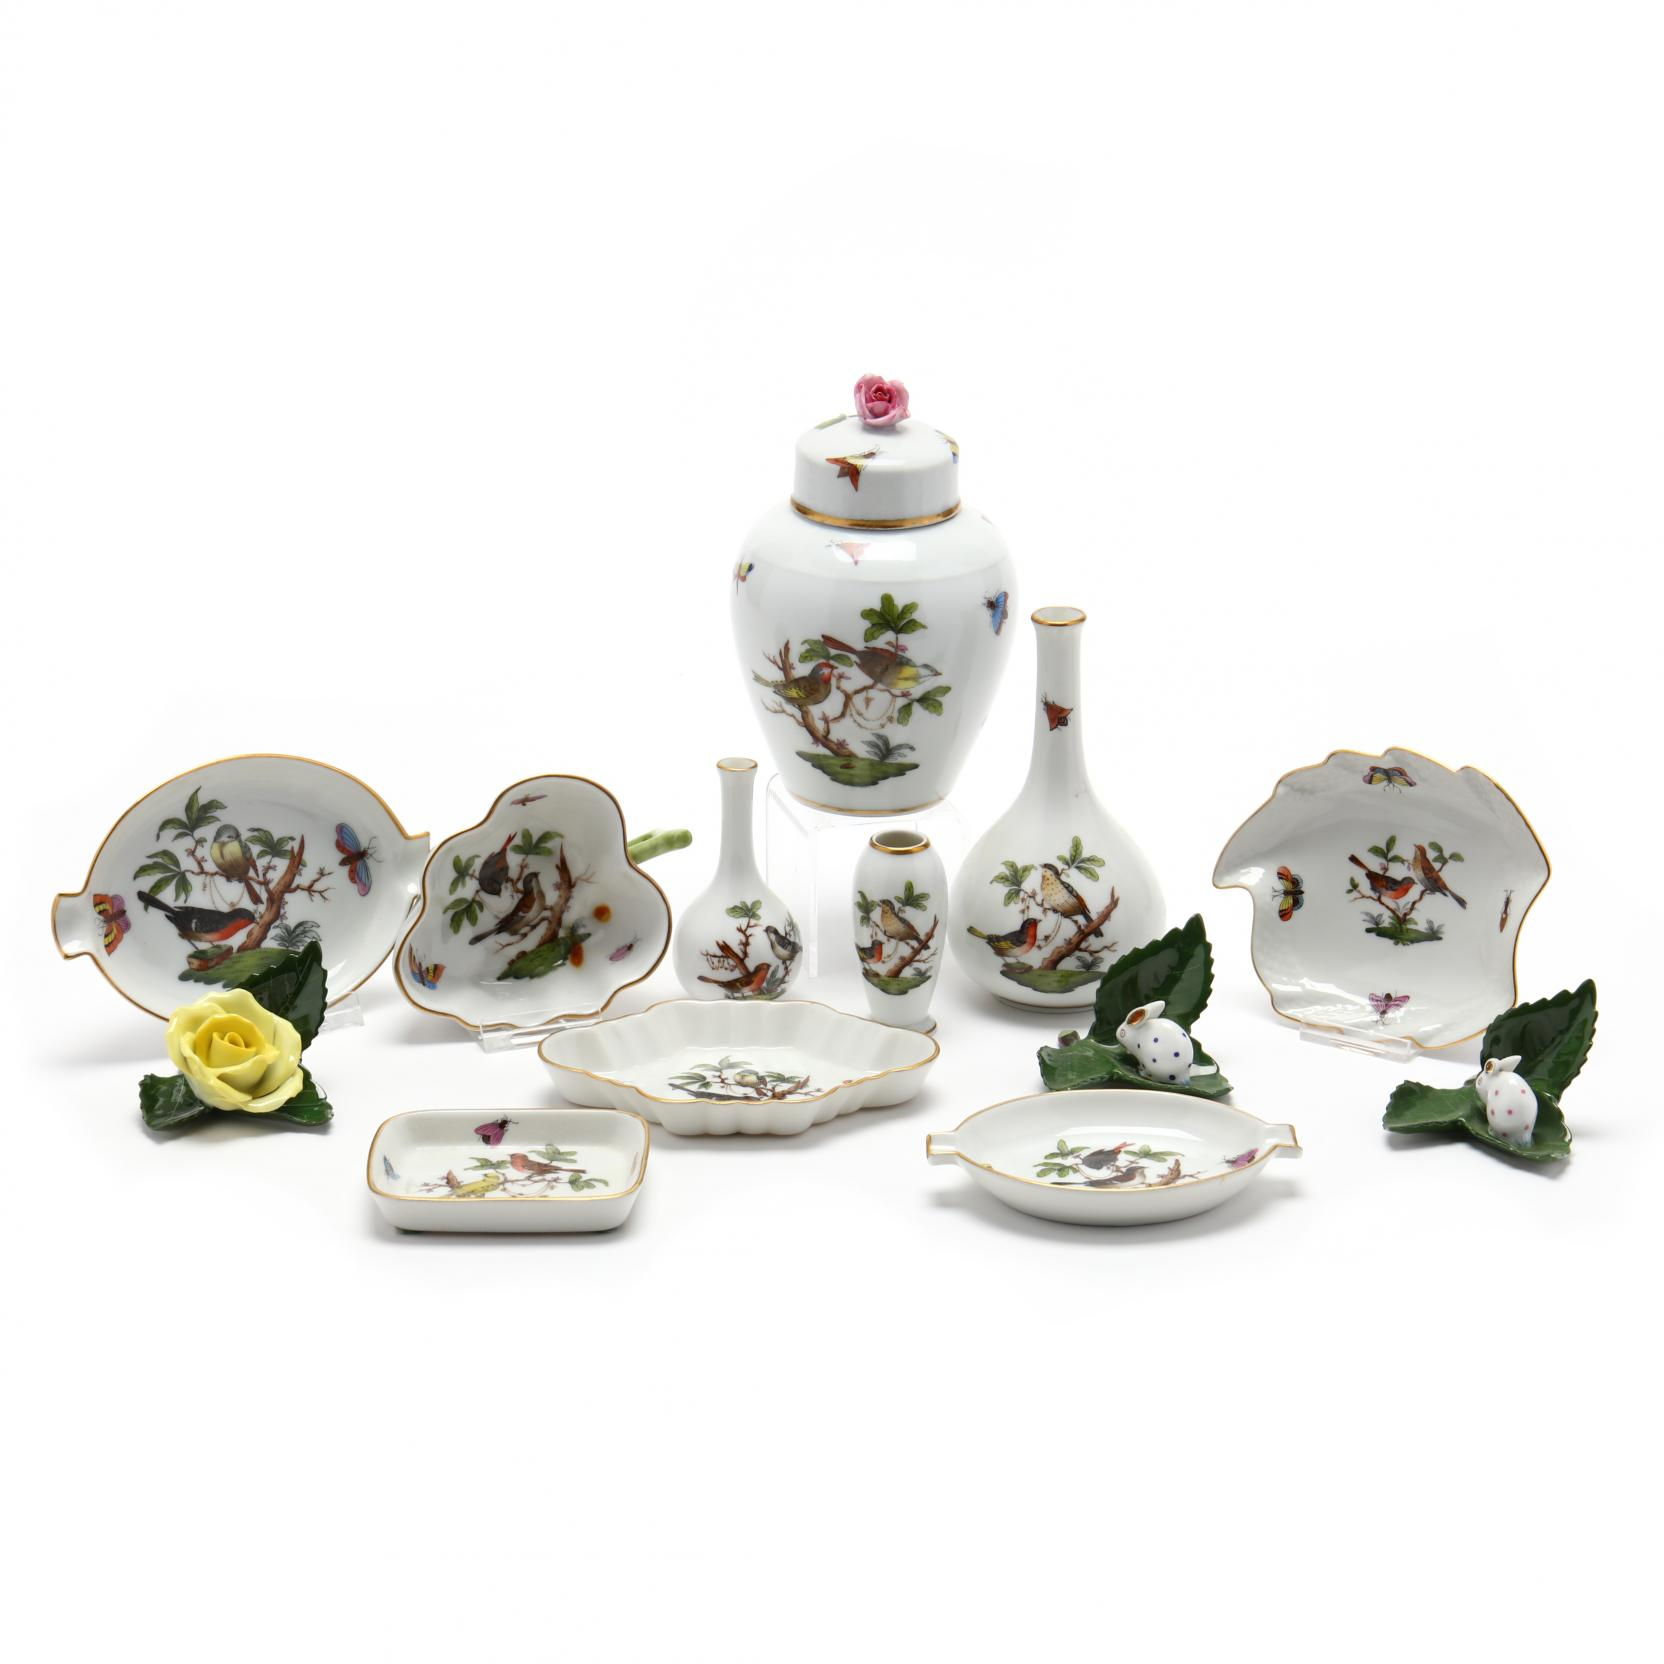 a-collection-of-herend-porcelain-accessories